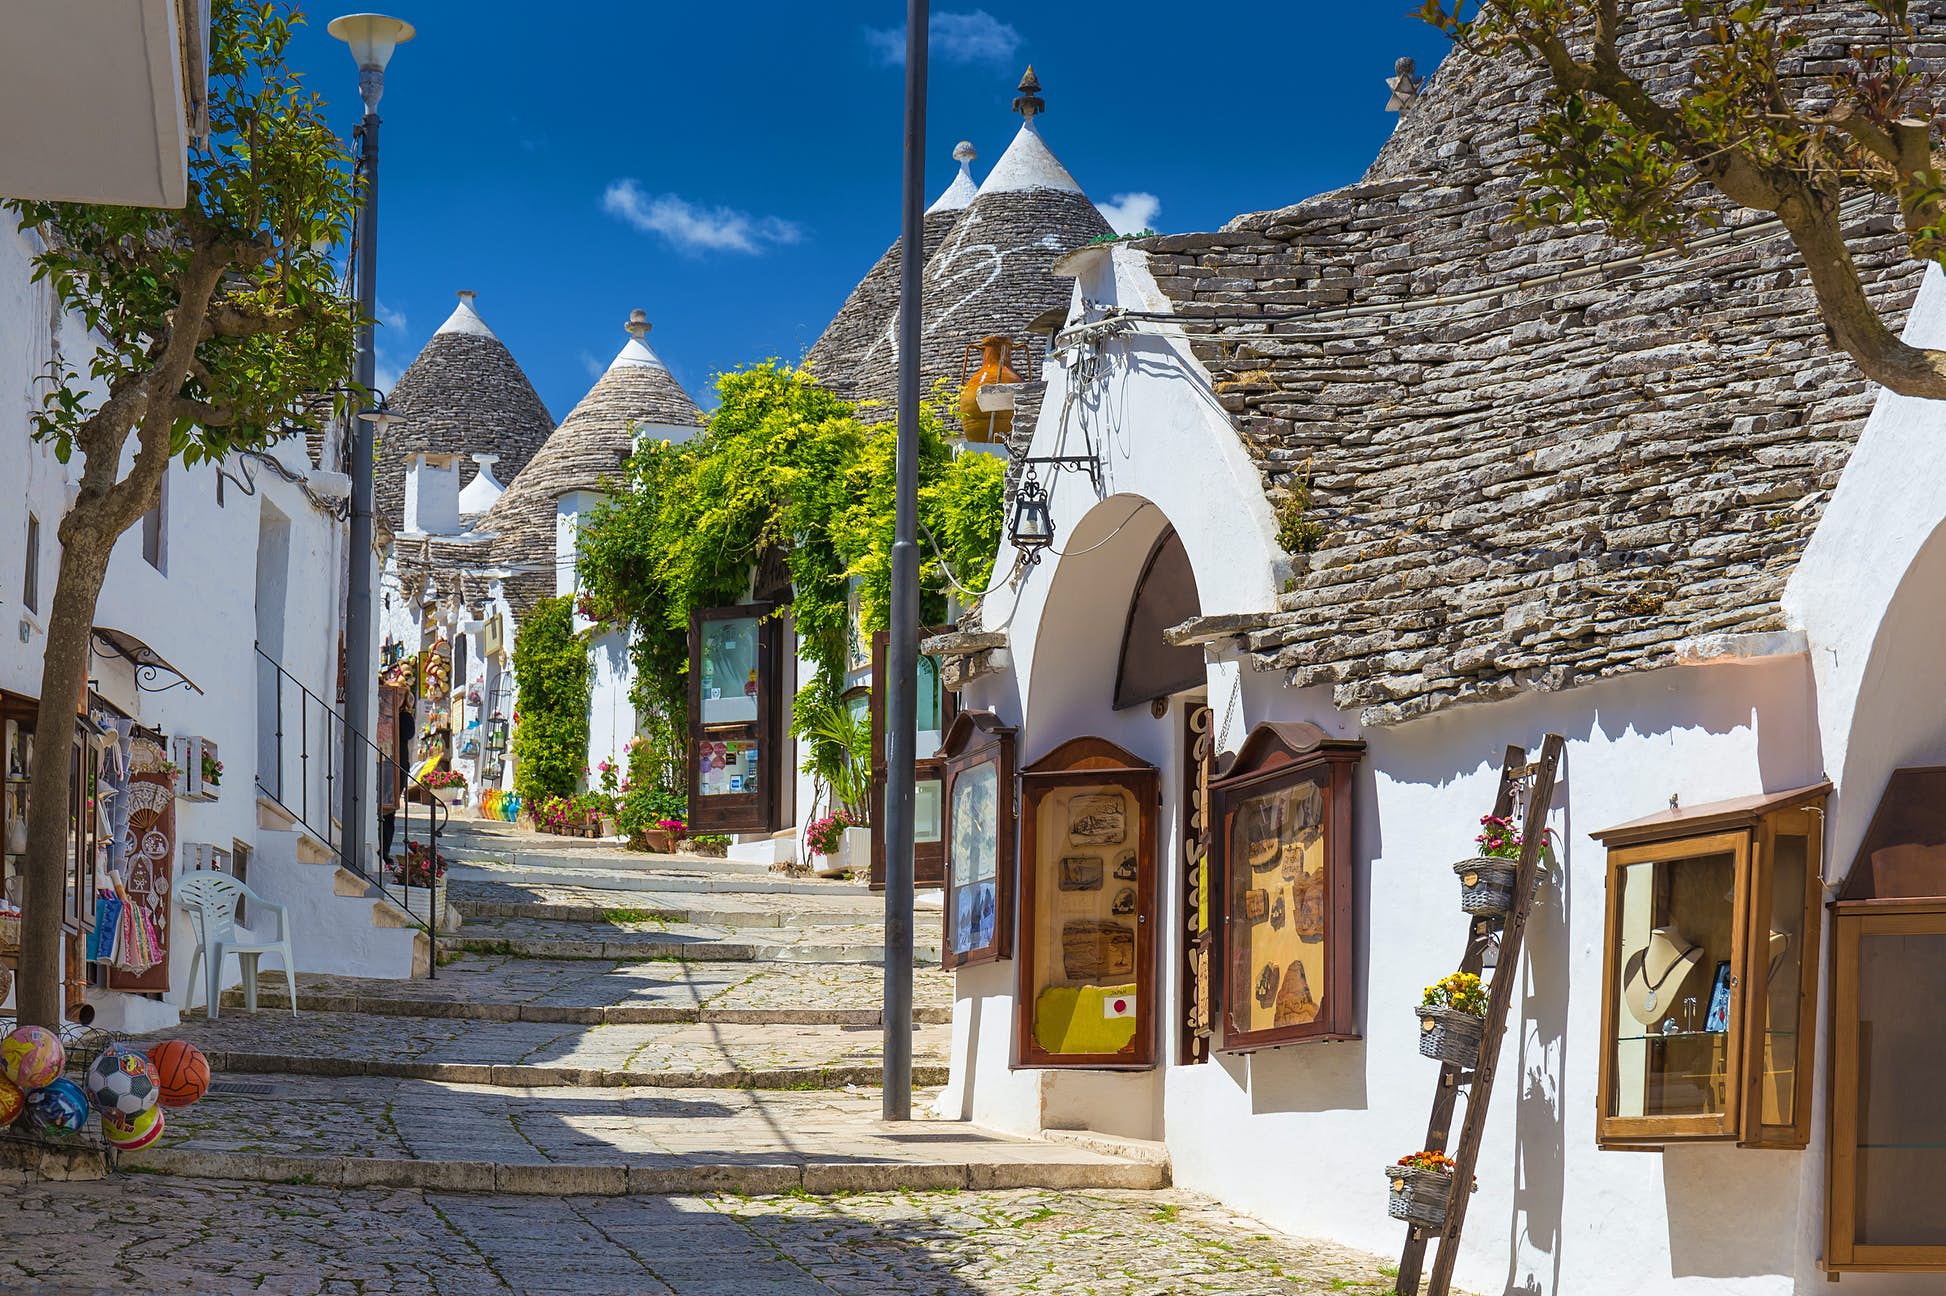 Puglia is home to the pretty town of Alberobello with its famous trulli houses ©Josef Skacel/Shutterstock